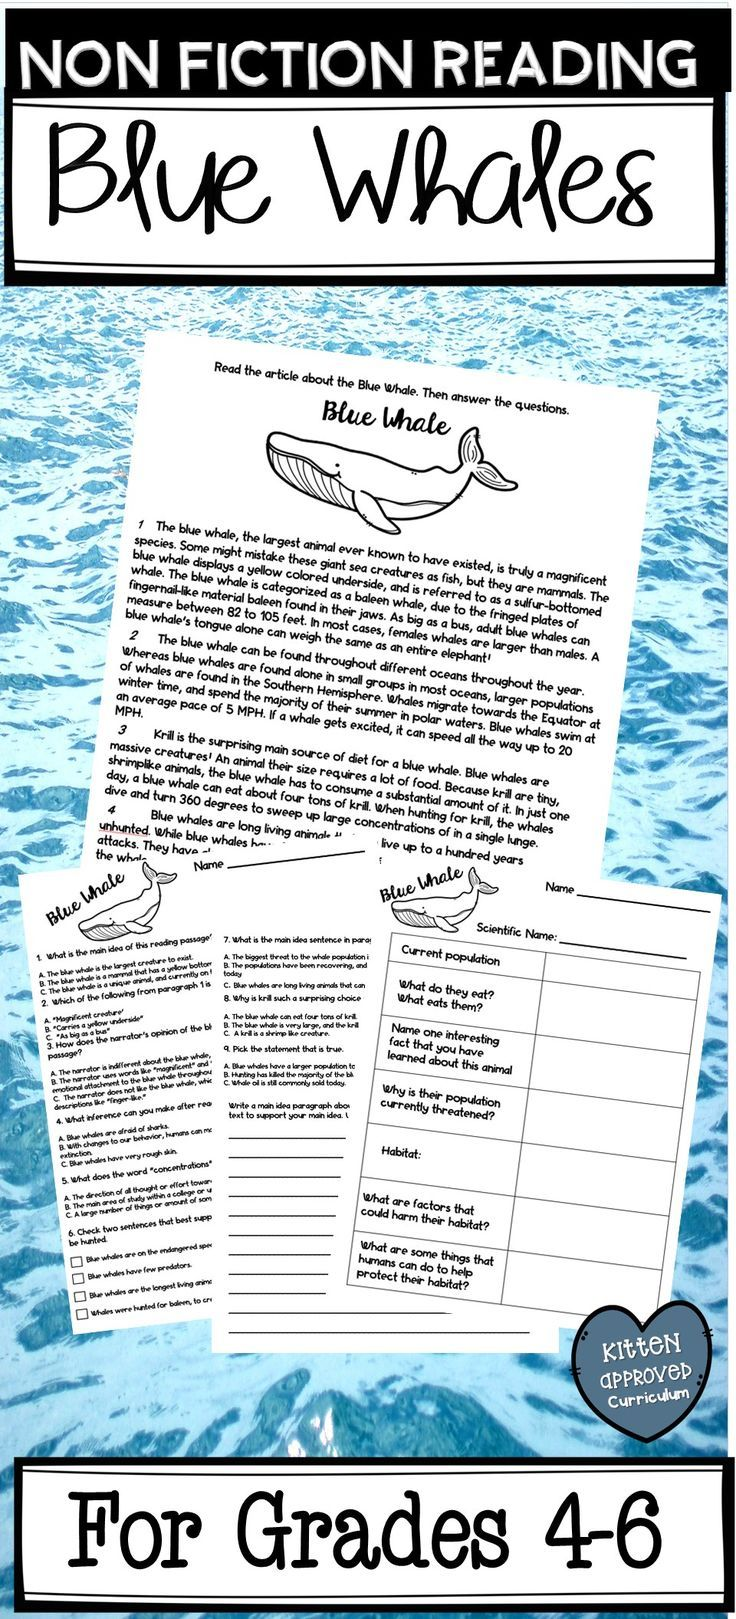 Non Fiction Reading And Comprehension Questions For 4th 5th And 6th Grade Students Perfect For Earth Da Reading Passages Teaching Reading Elementary Project [ 1619 x 736 Pixel ]